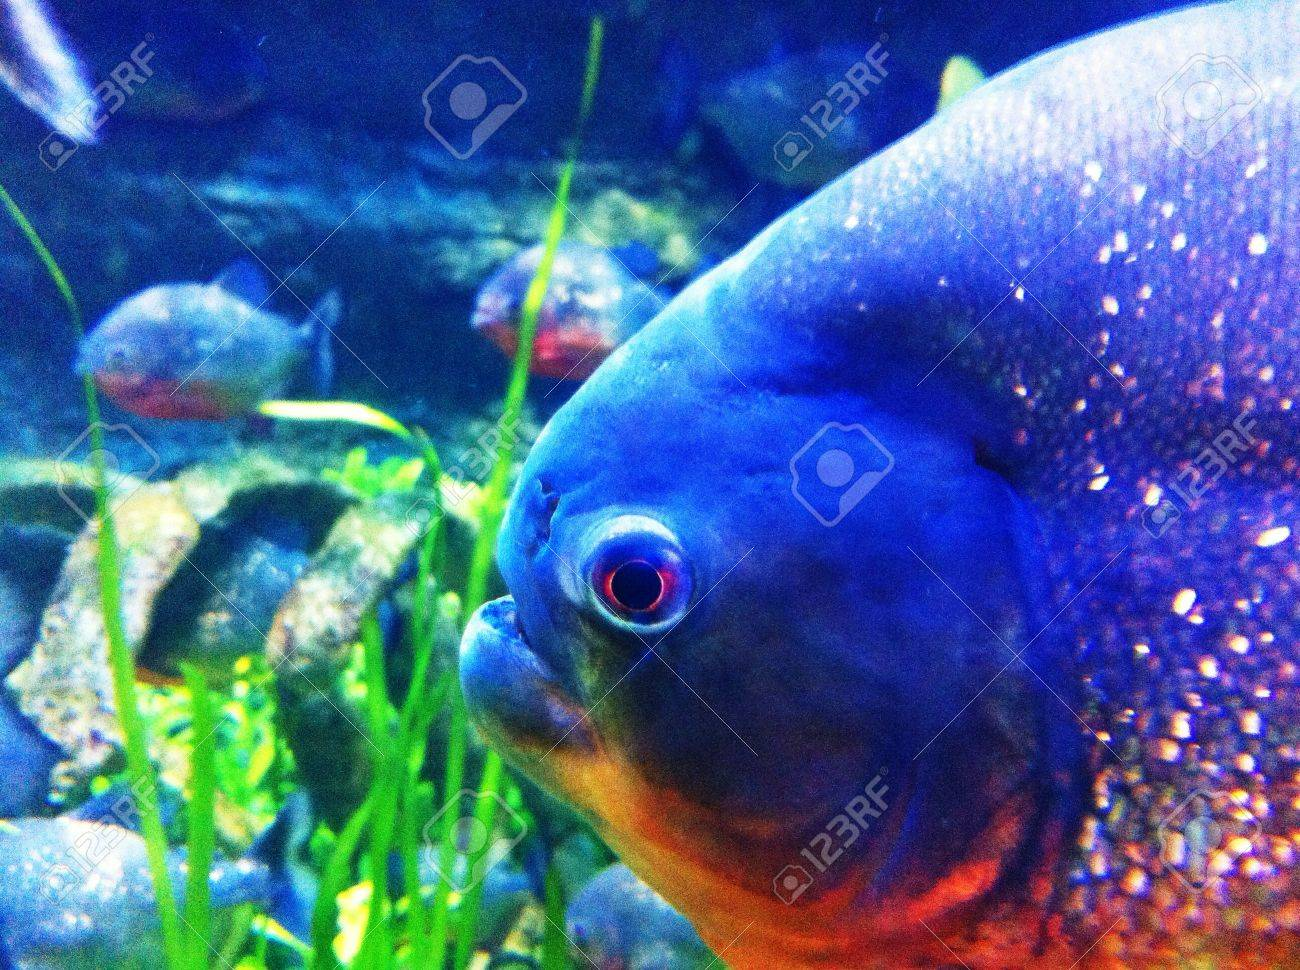 Piranha In Fish Tank At Dubai Mall Stock Photo Picture And Royalty Free Image Image 26418139